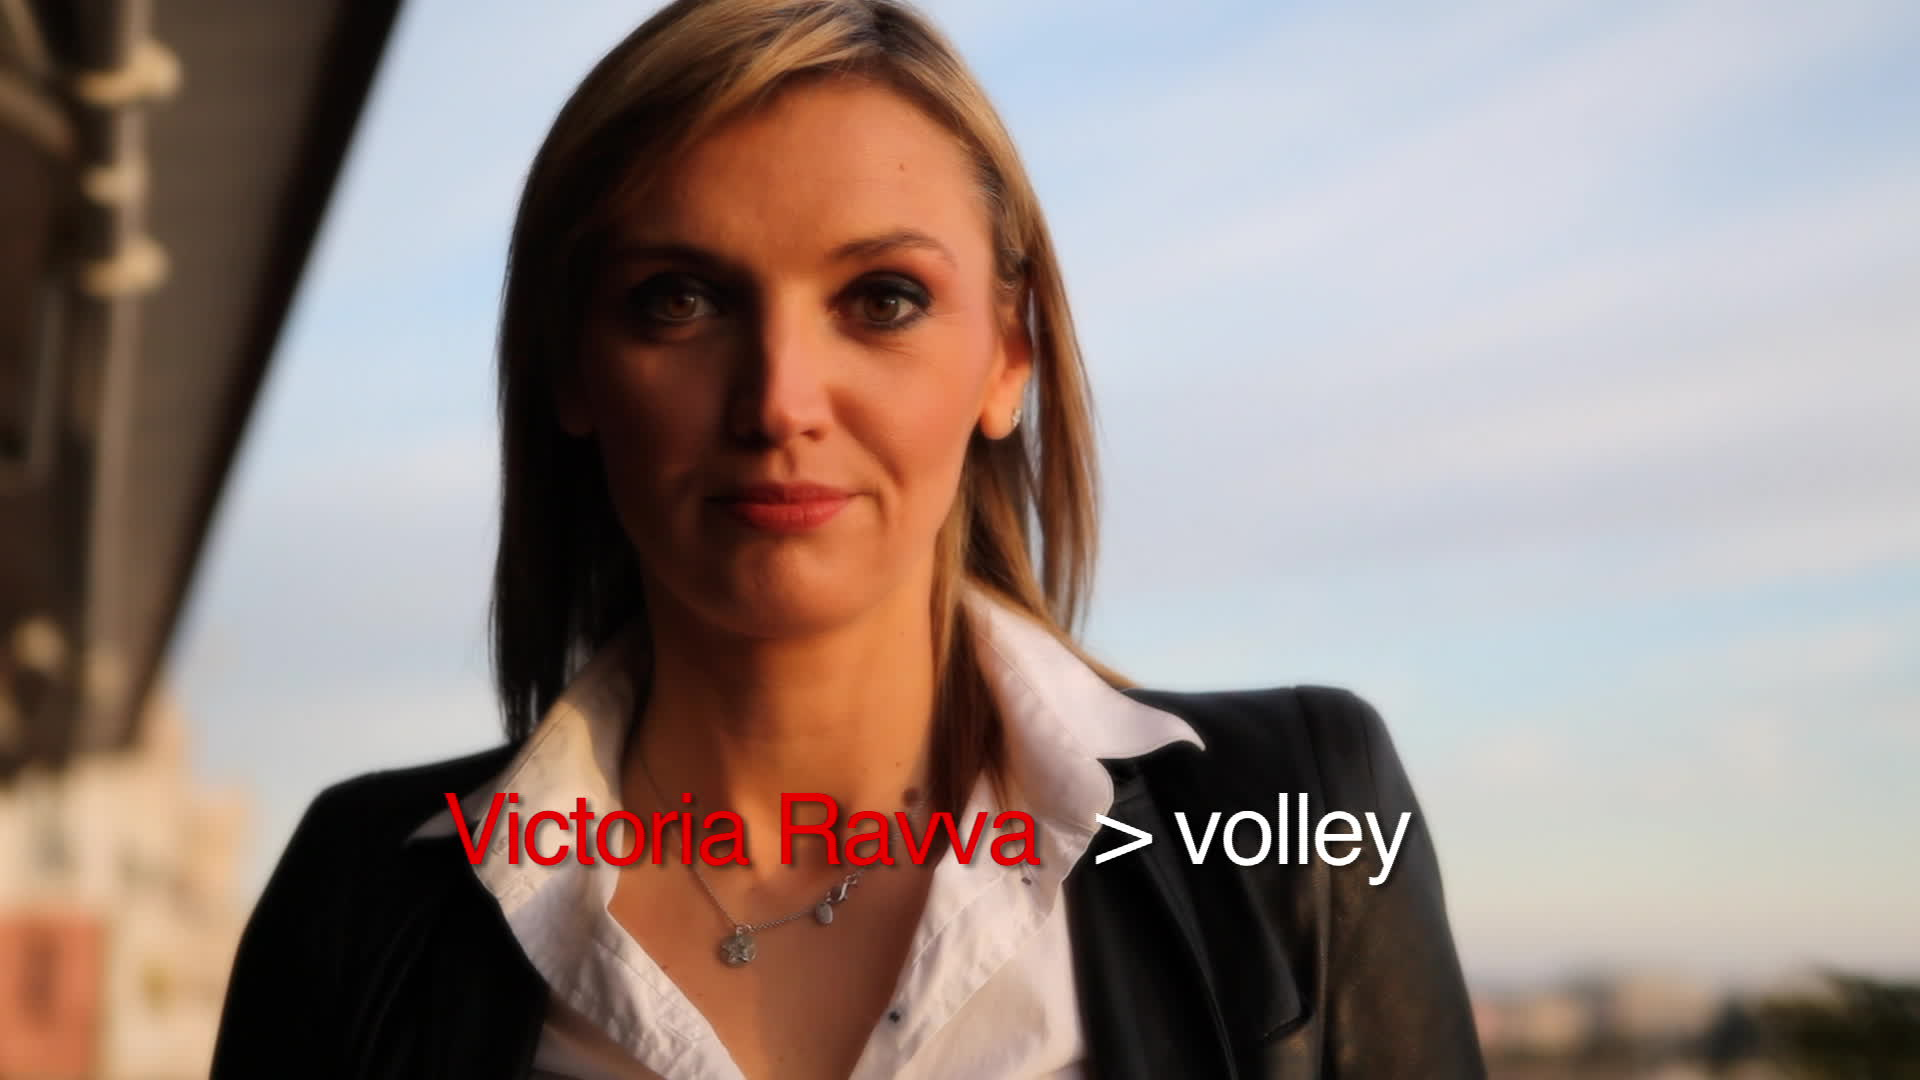 Victoria Ravva, volley-ball